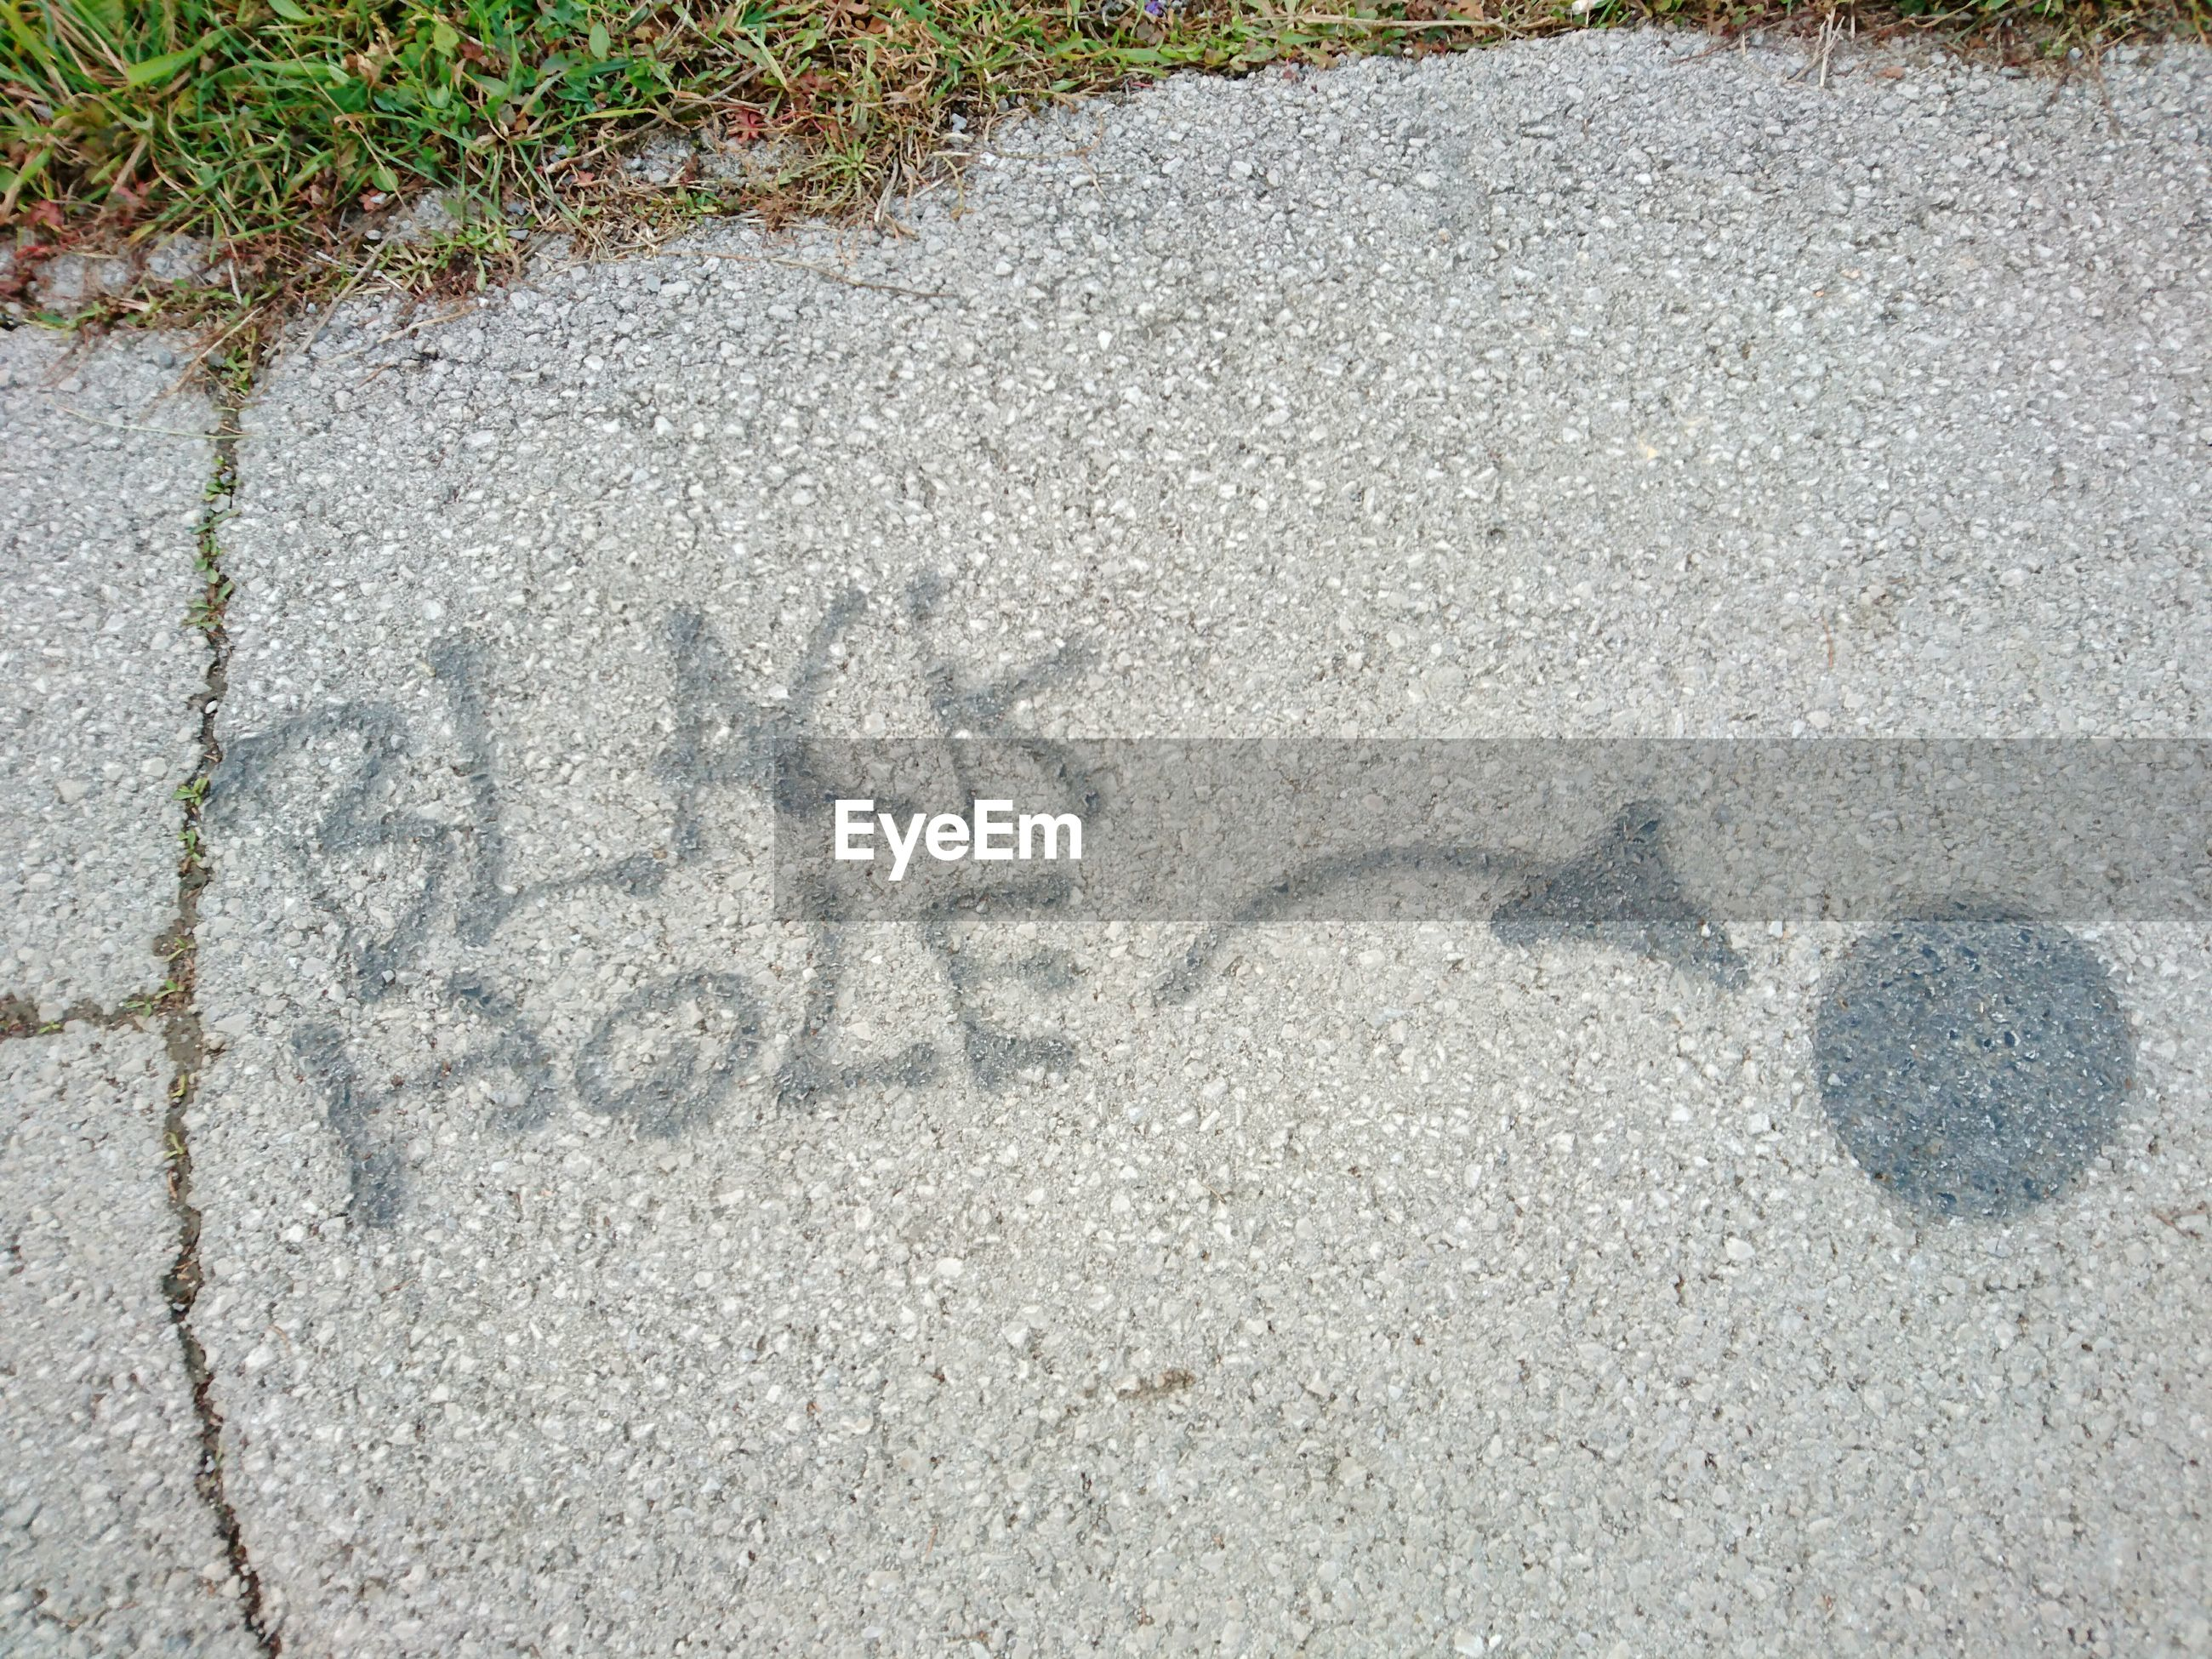 High angle view of text with arrow symbol on road